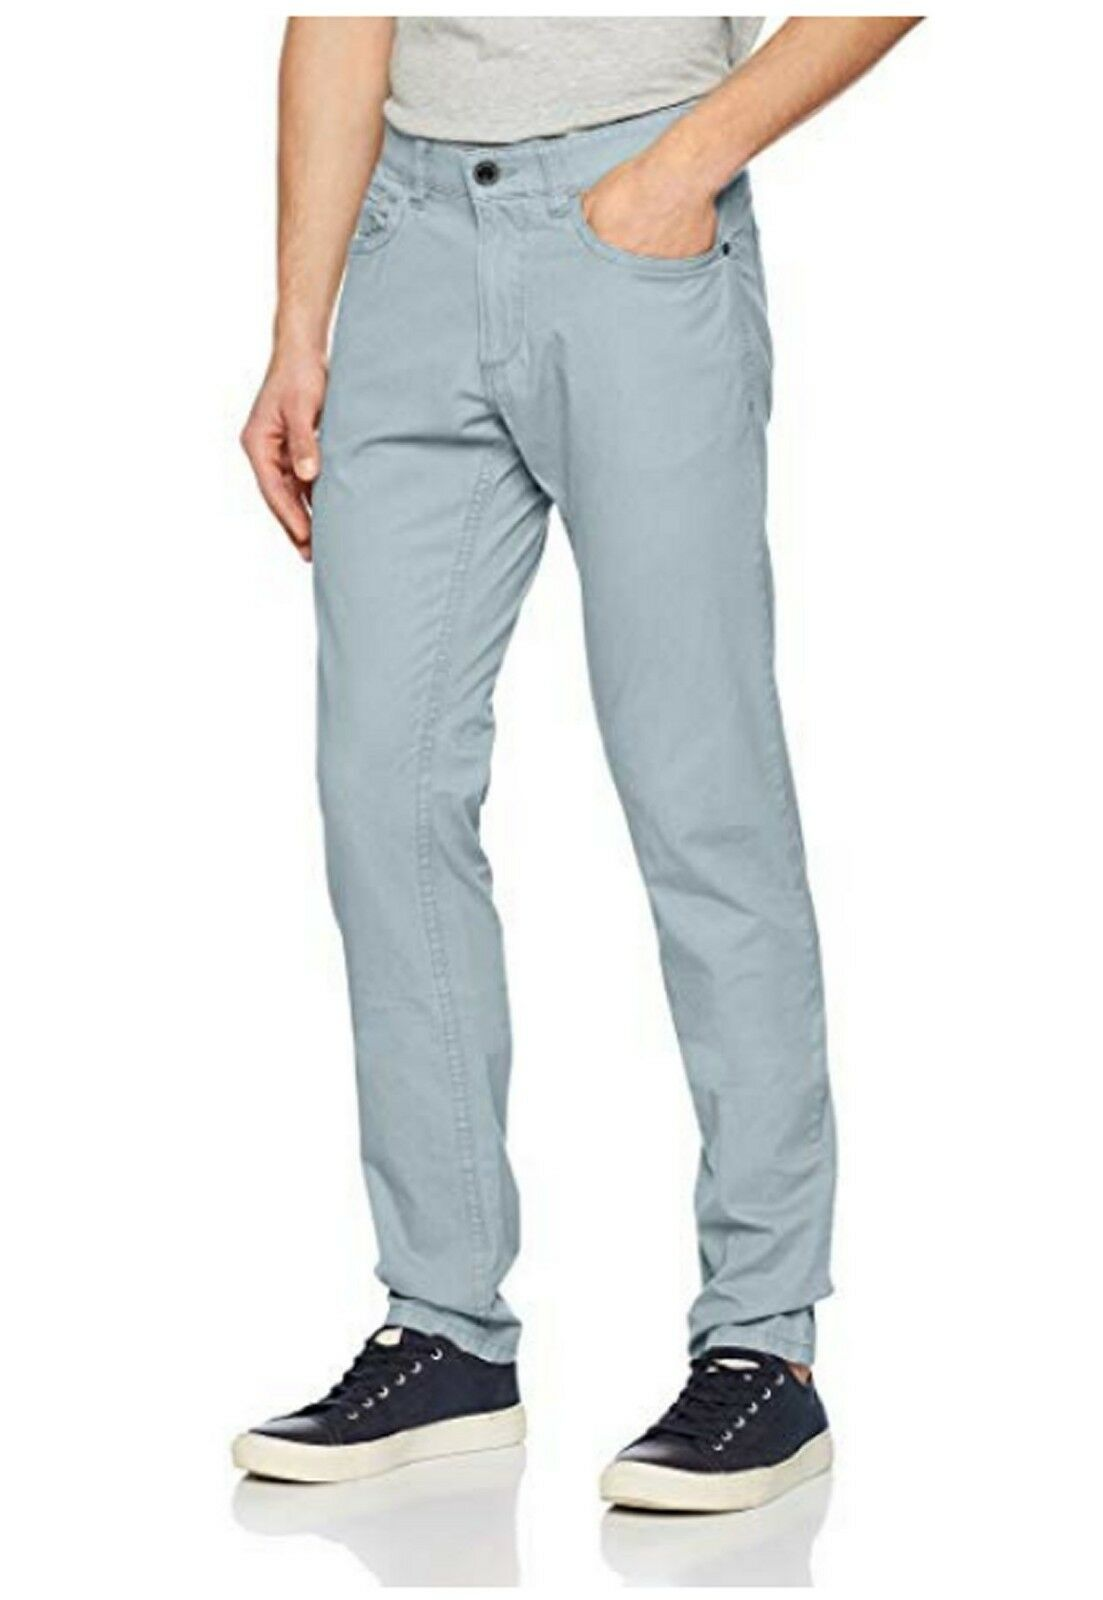 Camel Active Madison 34 waist x 34 leg measured stretch trousers NEW€69.95 tag